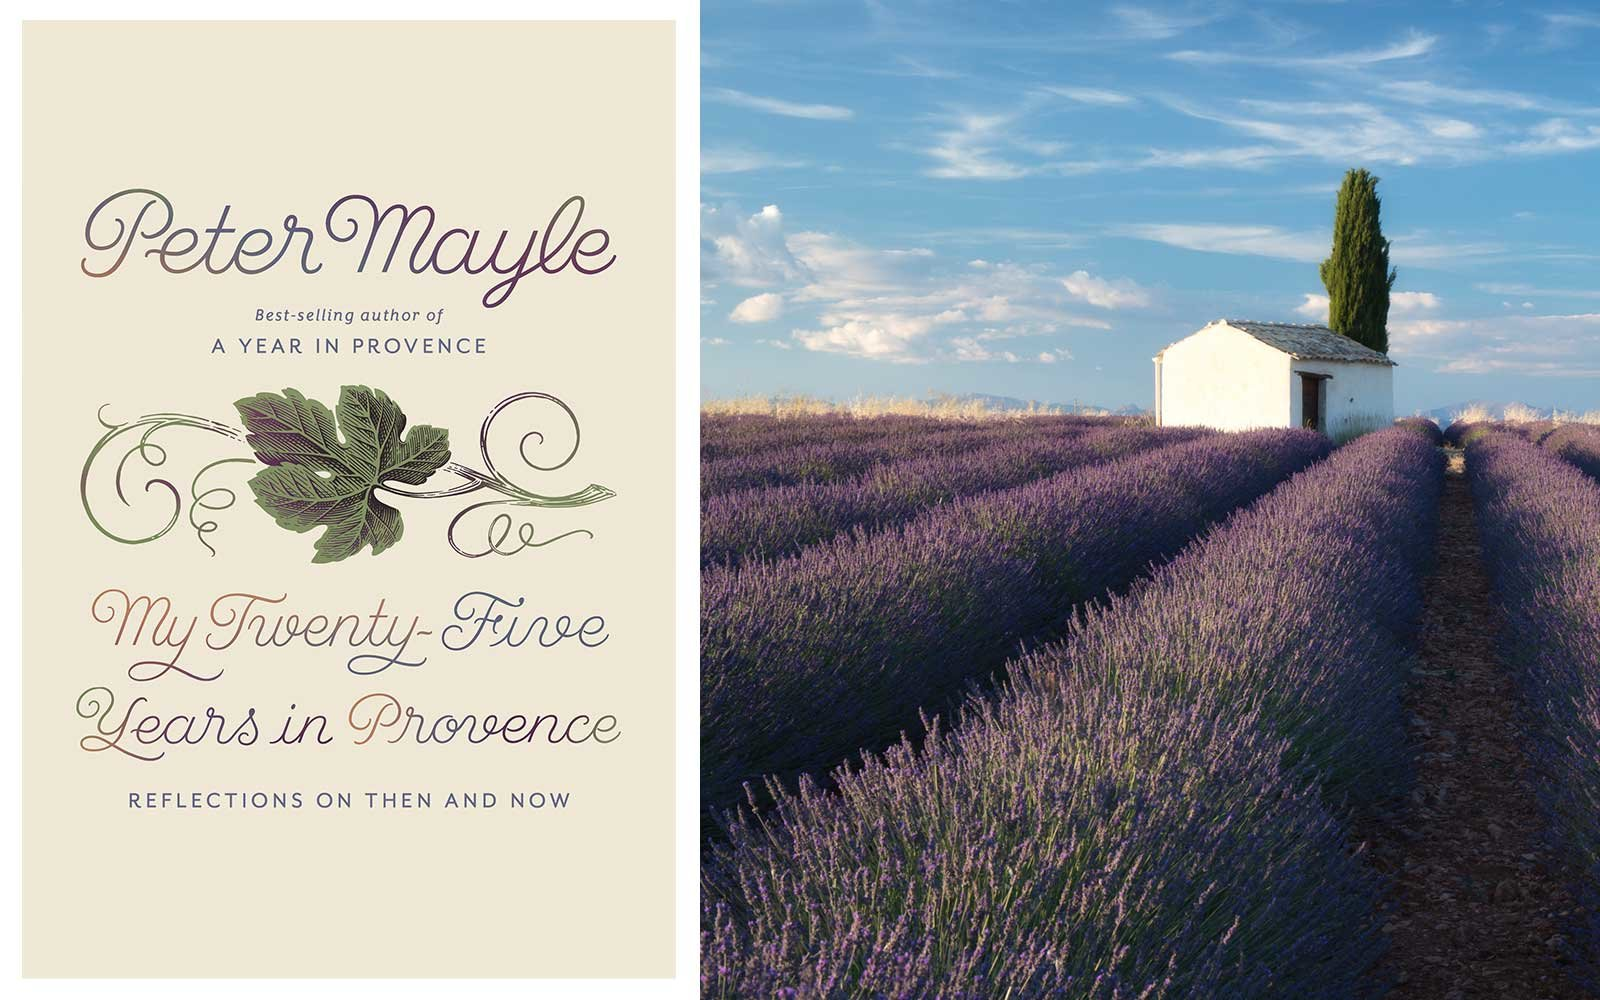 Peter Mayle My Twenty Five Years in Provence book